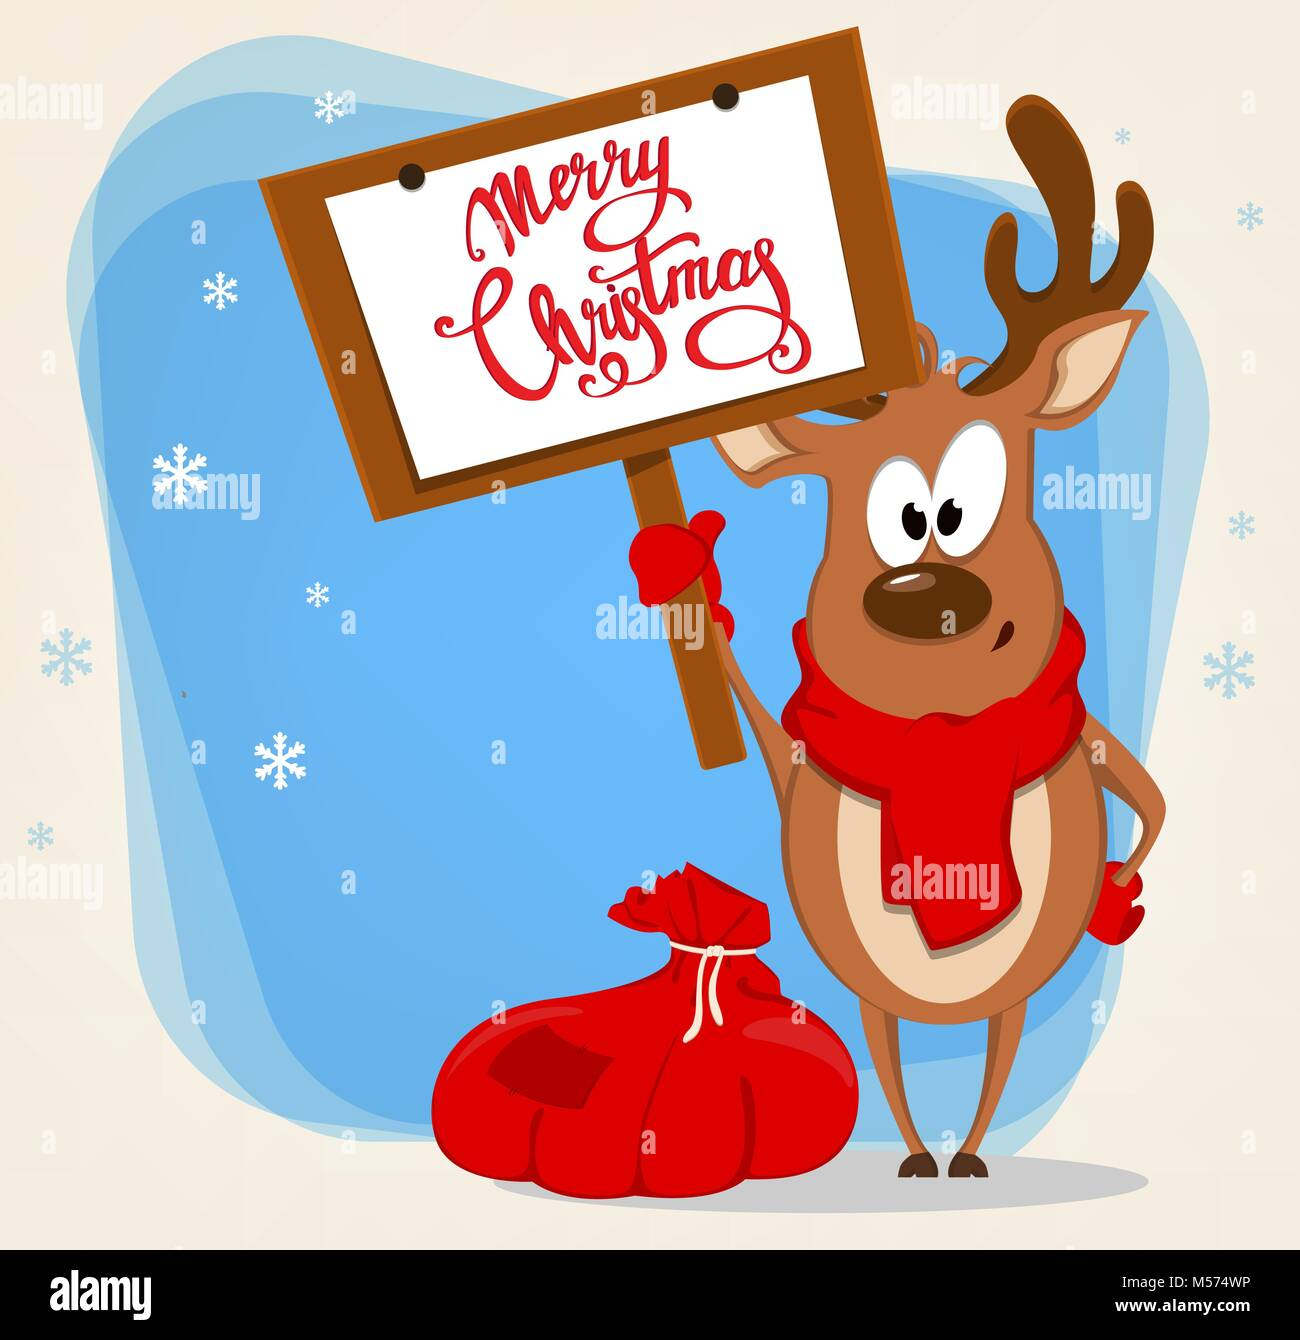 Merry christmas greeting card with funny reindeer standing near bag merry christmas greeting card with funny reindeer standing near bag with presents and holding placard with greetings vector illustration on blue back m4hsunfo